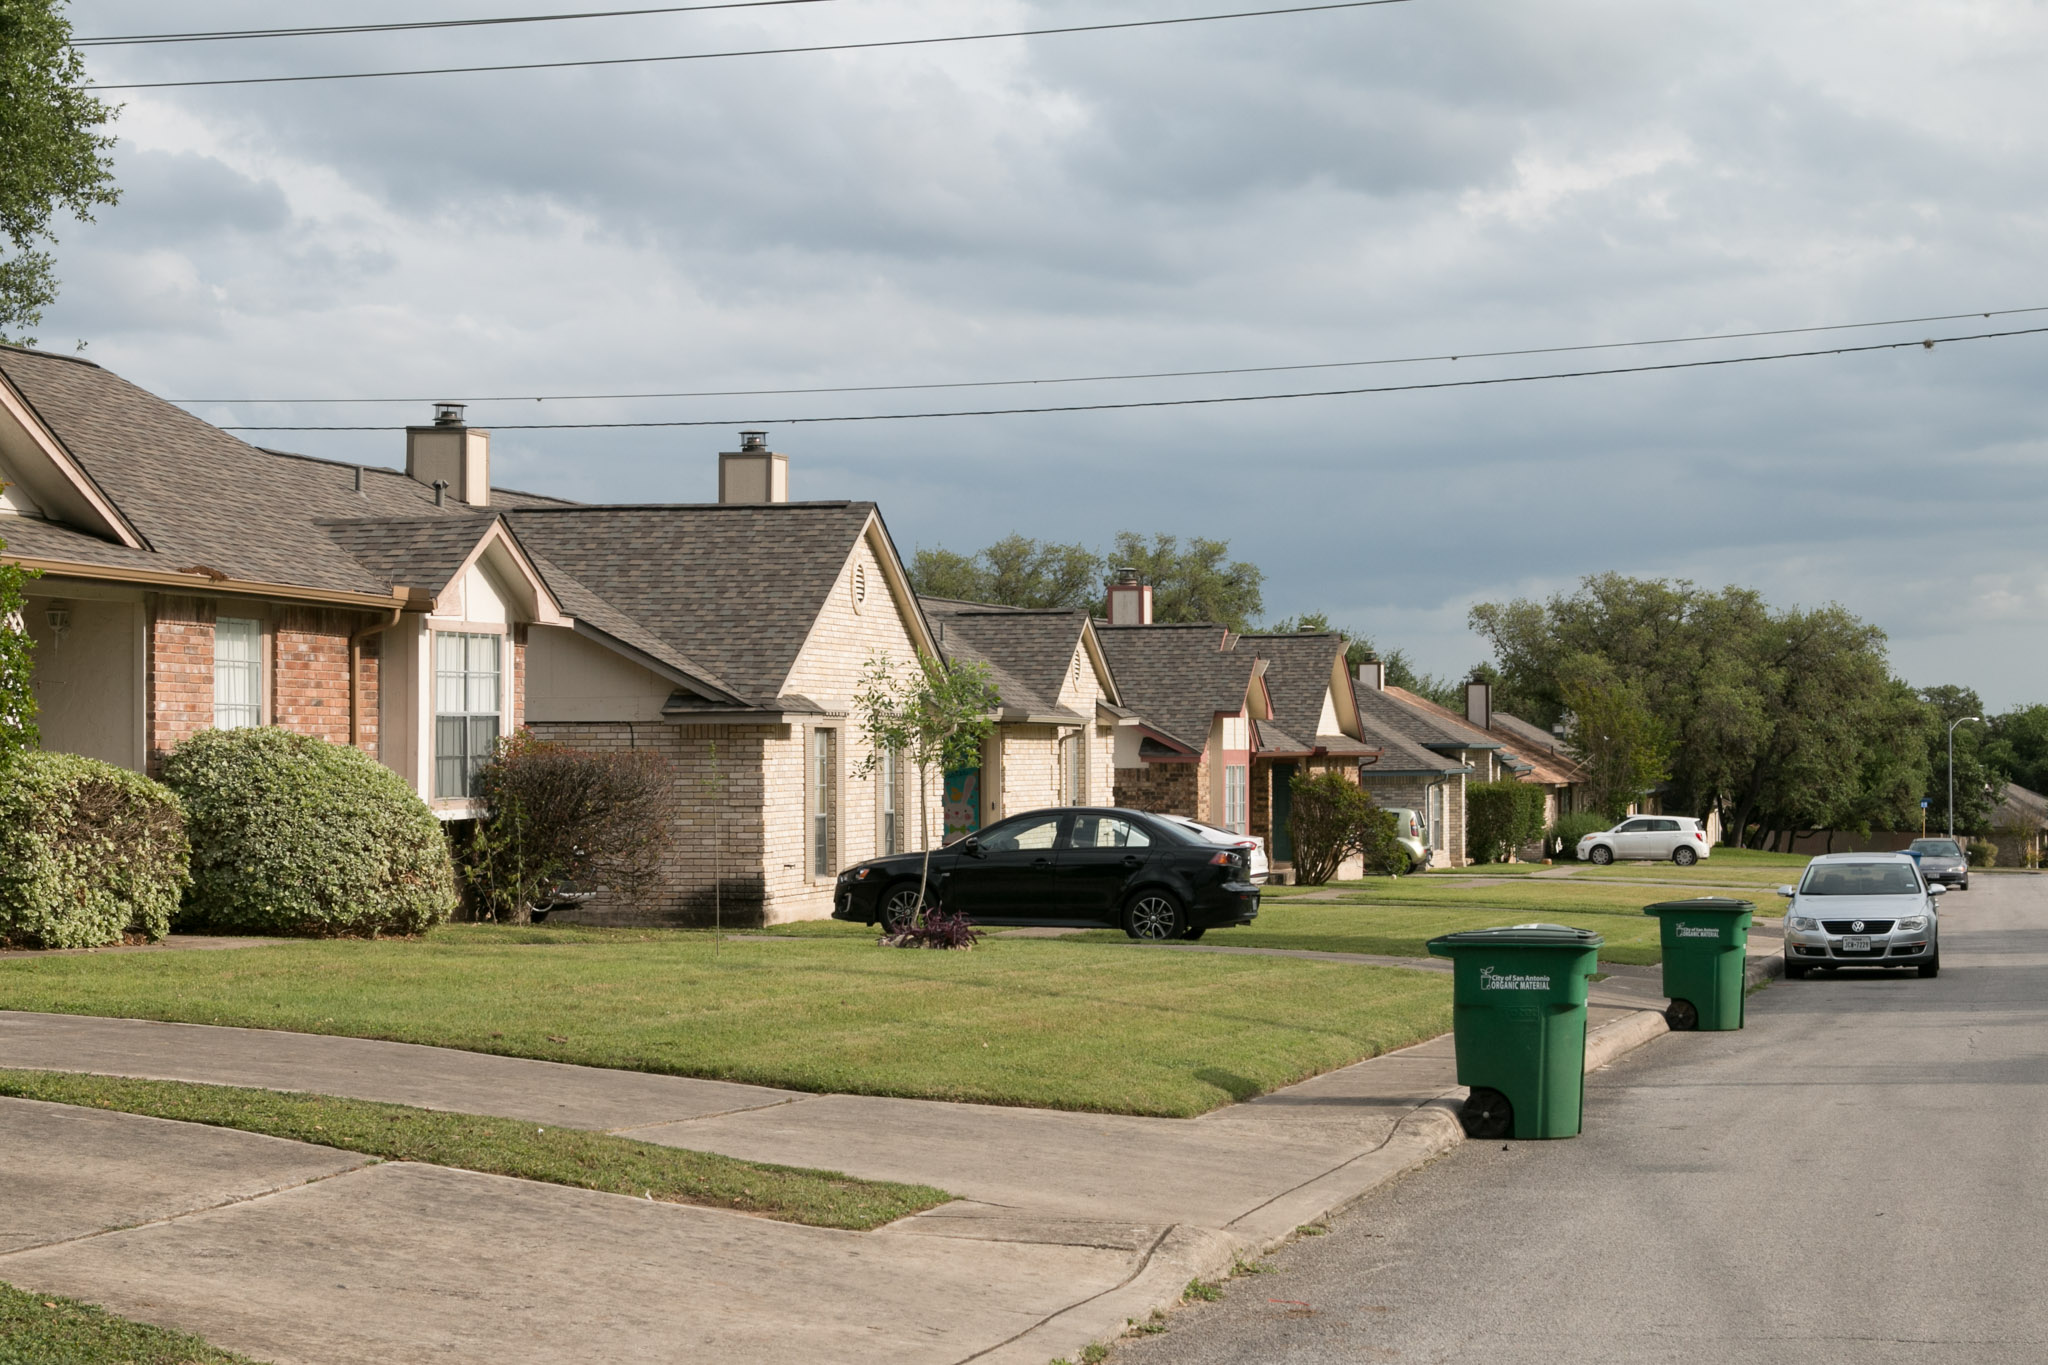 Suburban homes line a neighborhood in District 6.